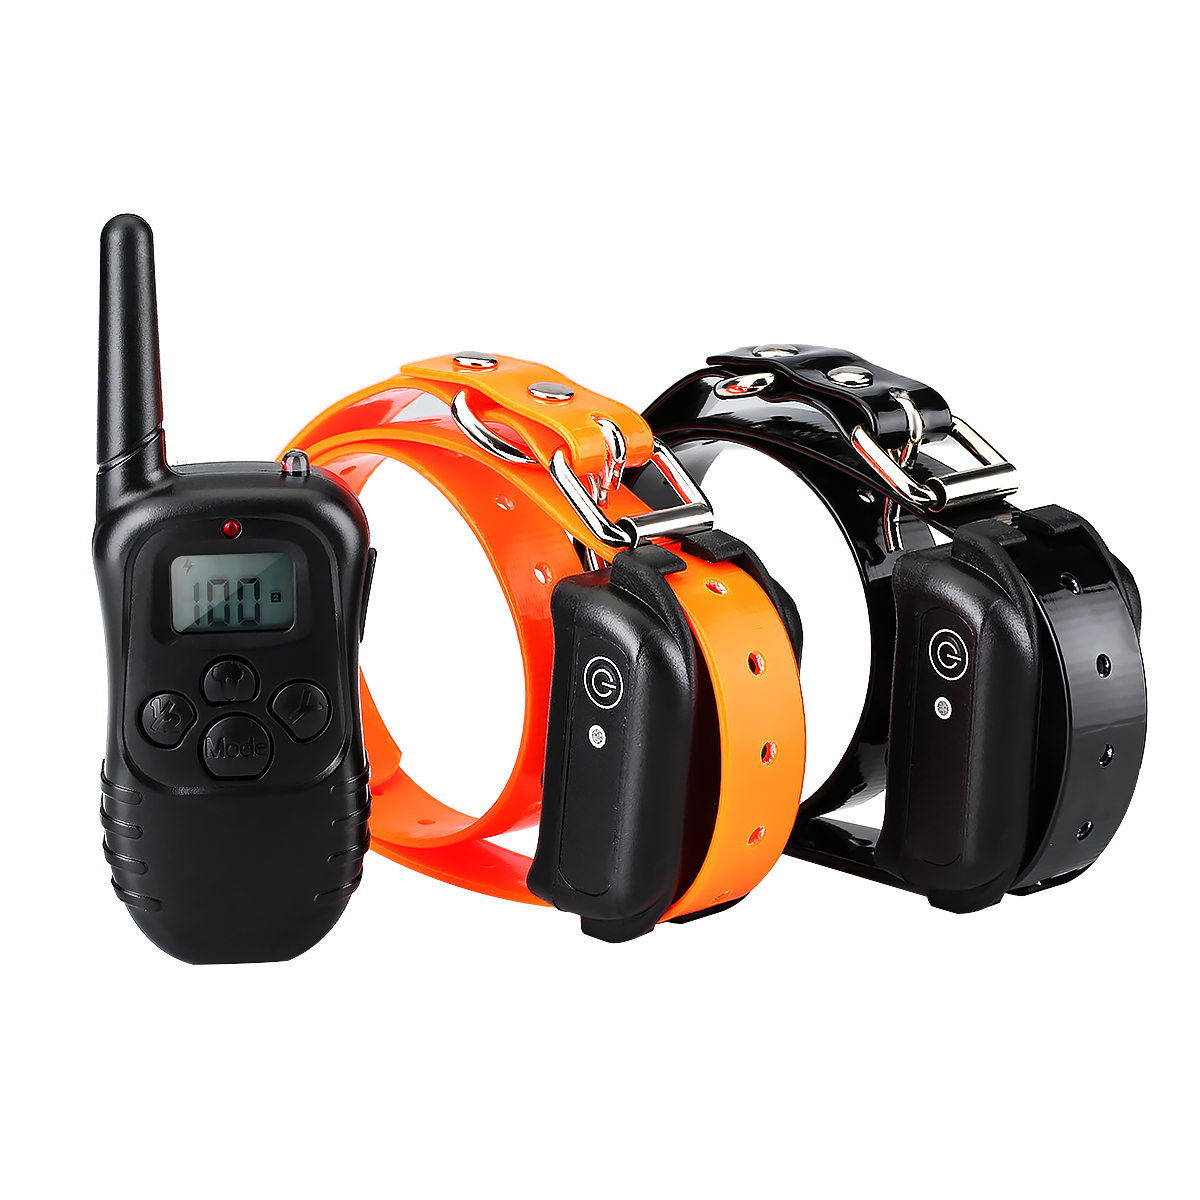 GE VicTsing Dog Training Collar, Remote 2 Dog Training Co...